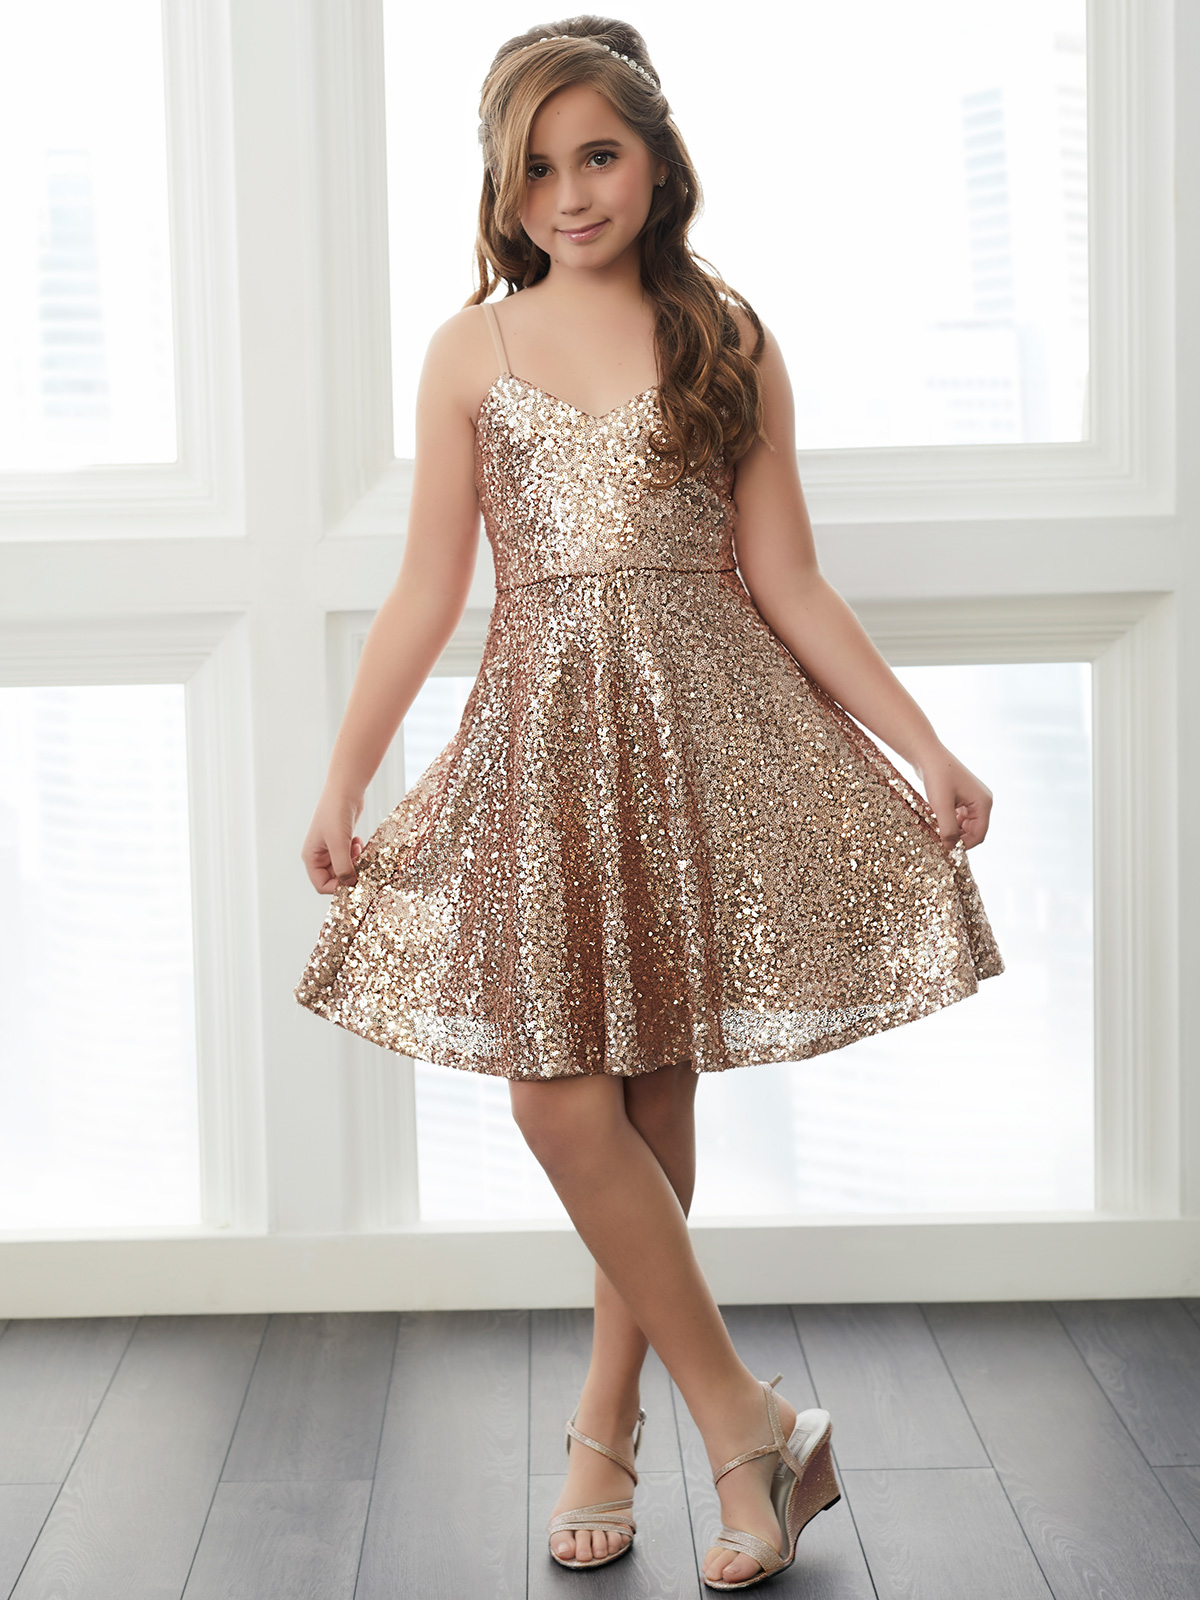 Christina wu junior sequins v neck bridesmaid dressdimitradesigns christina wu junior 32761 v neck bridesmaid dress ombrellifo Choice Image